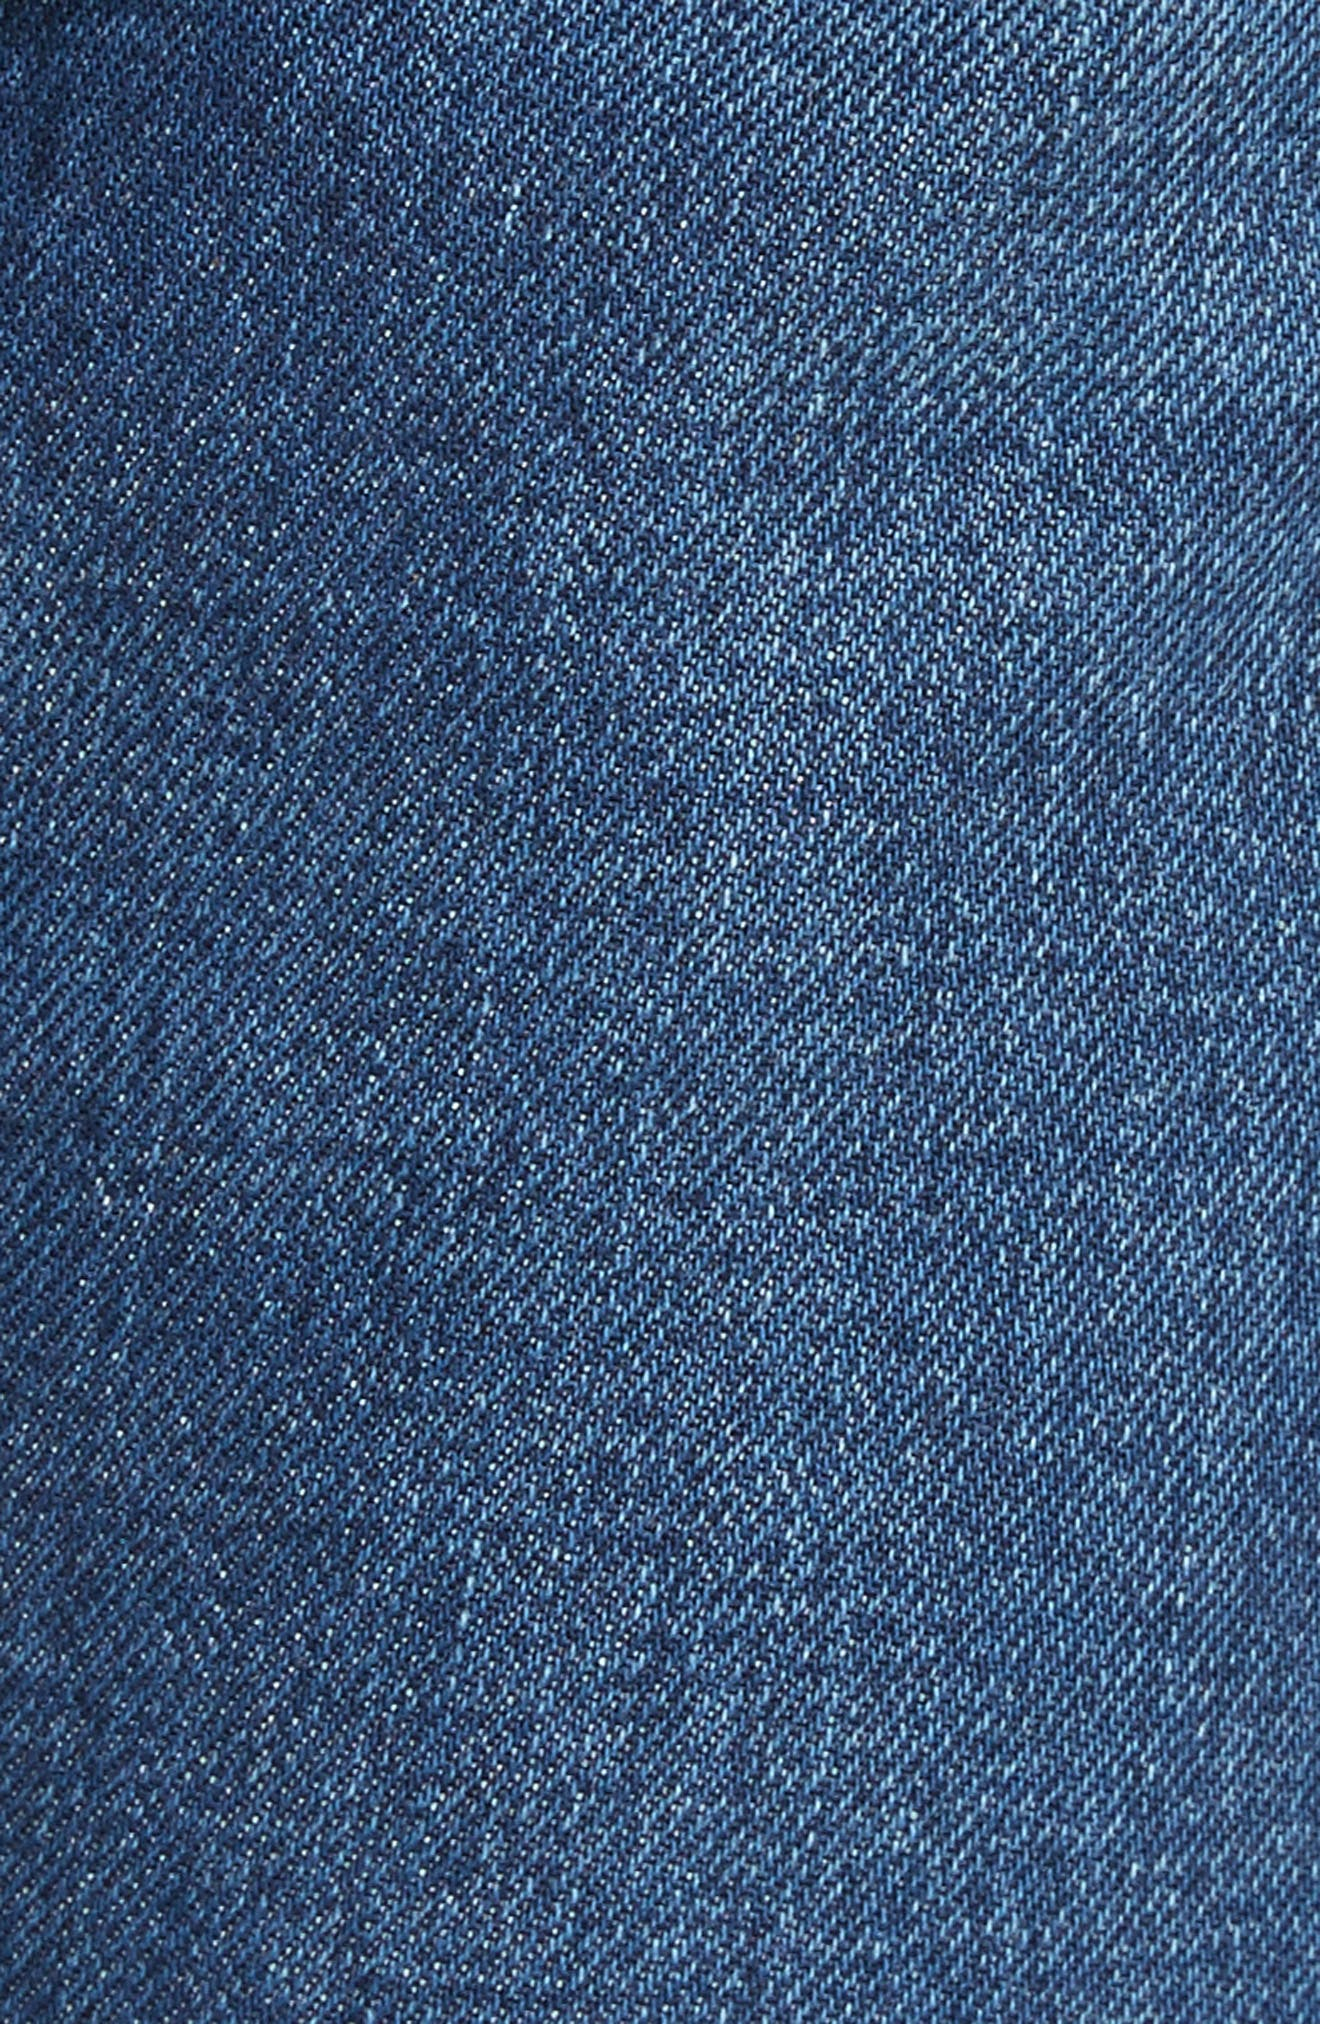 Embroidered Jeans,                             Alternate thumbnail 5, color,                             411